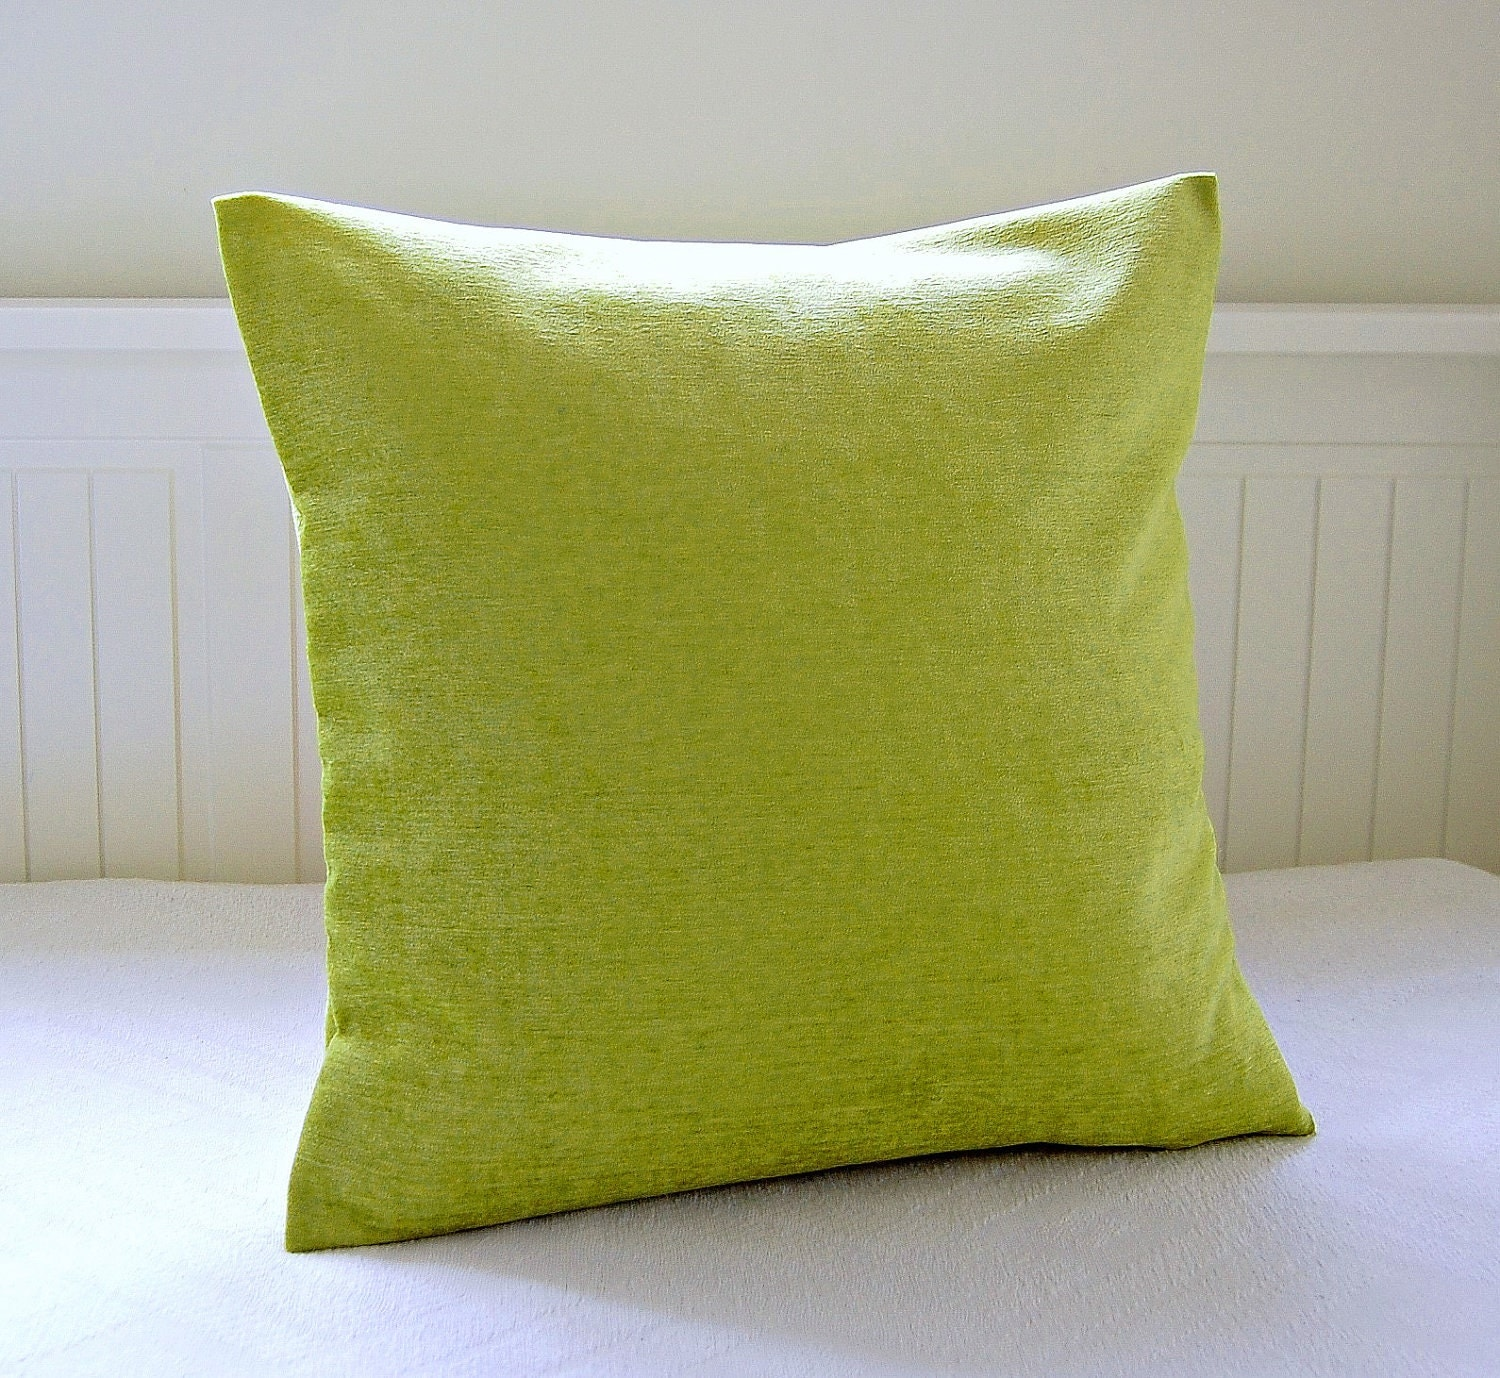 Our set of textured lime green cushions will give your outdoor seating a punch of citrus-y color. The percent polyester is bot h weather-resistant and fade-resistant, so these by inch cushions are ready for either your covered patio or your poolside deck. High-quality polyfill stuffing ensures they are comfortable for hours of relaxing enjoyment.